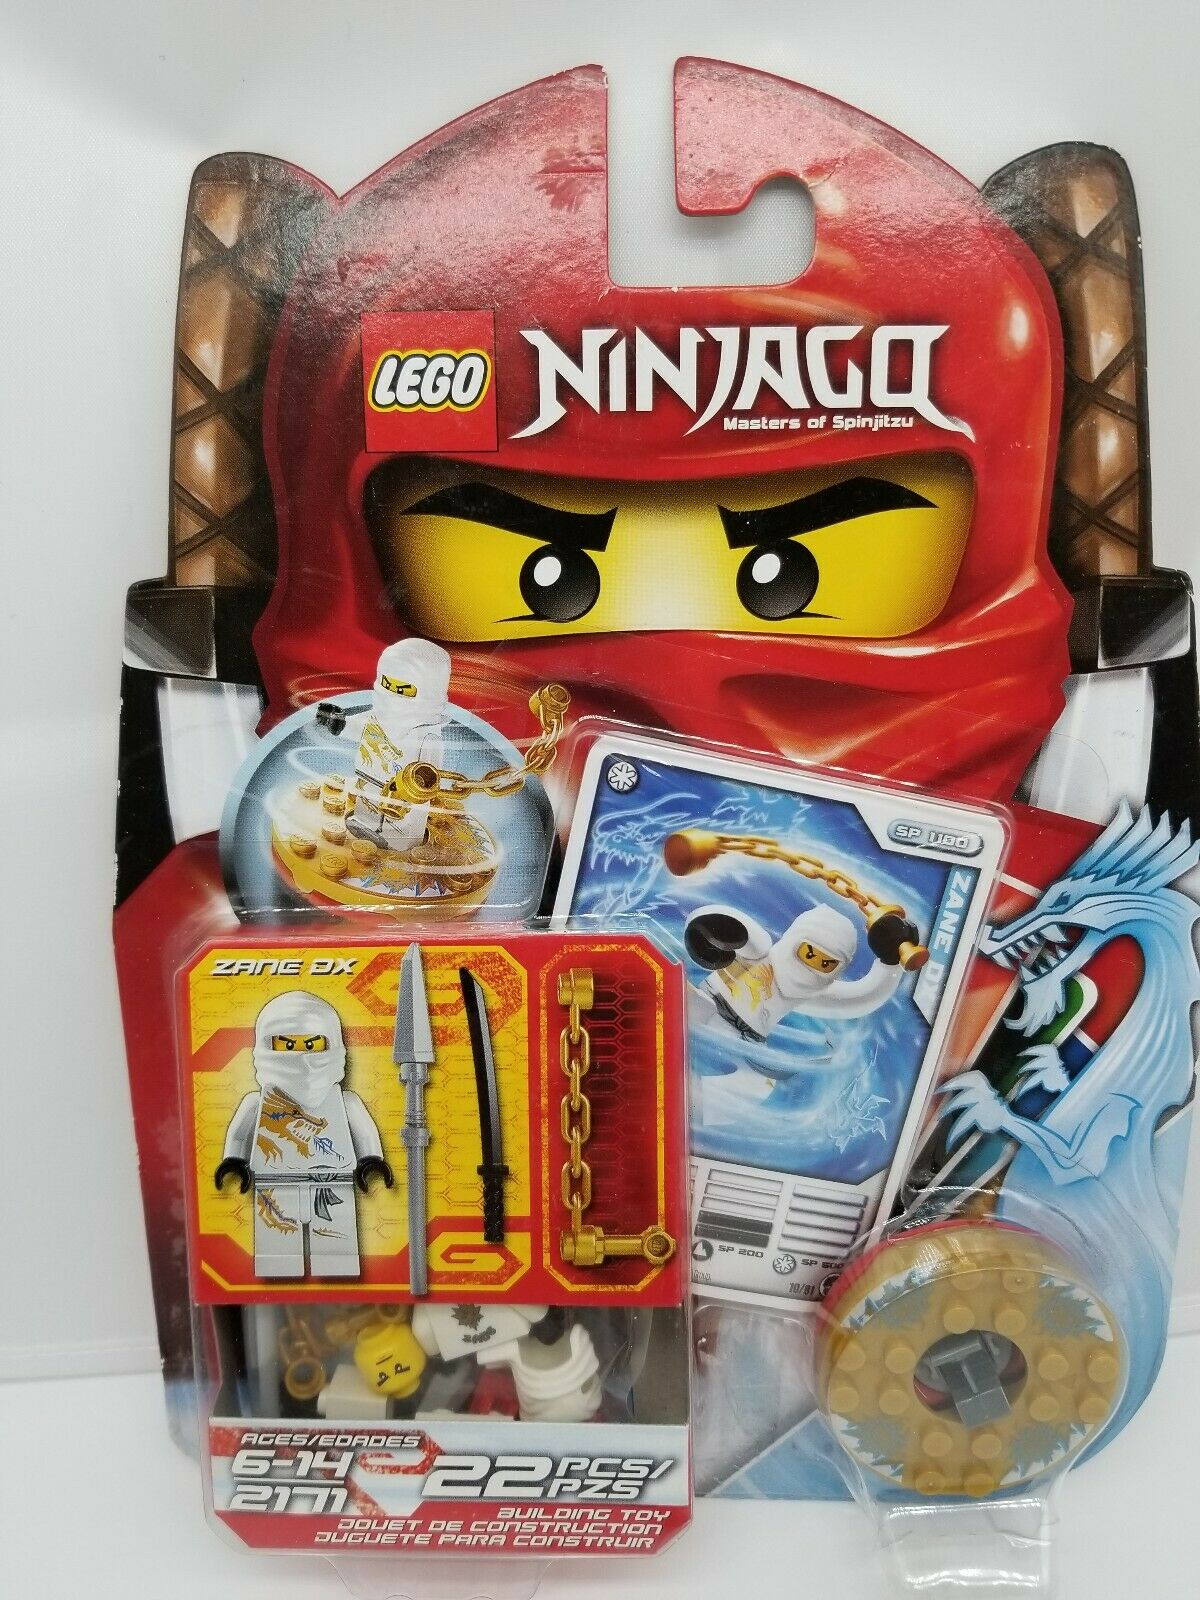 1x Lego Ninjago Spinner Red Pearl Gold Element Ice with Sliding Stone Set 2171